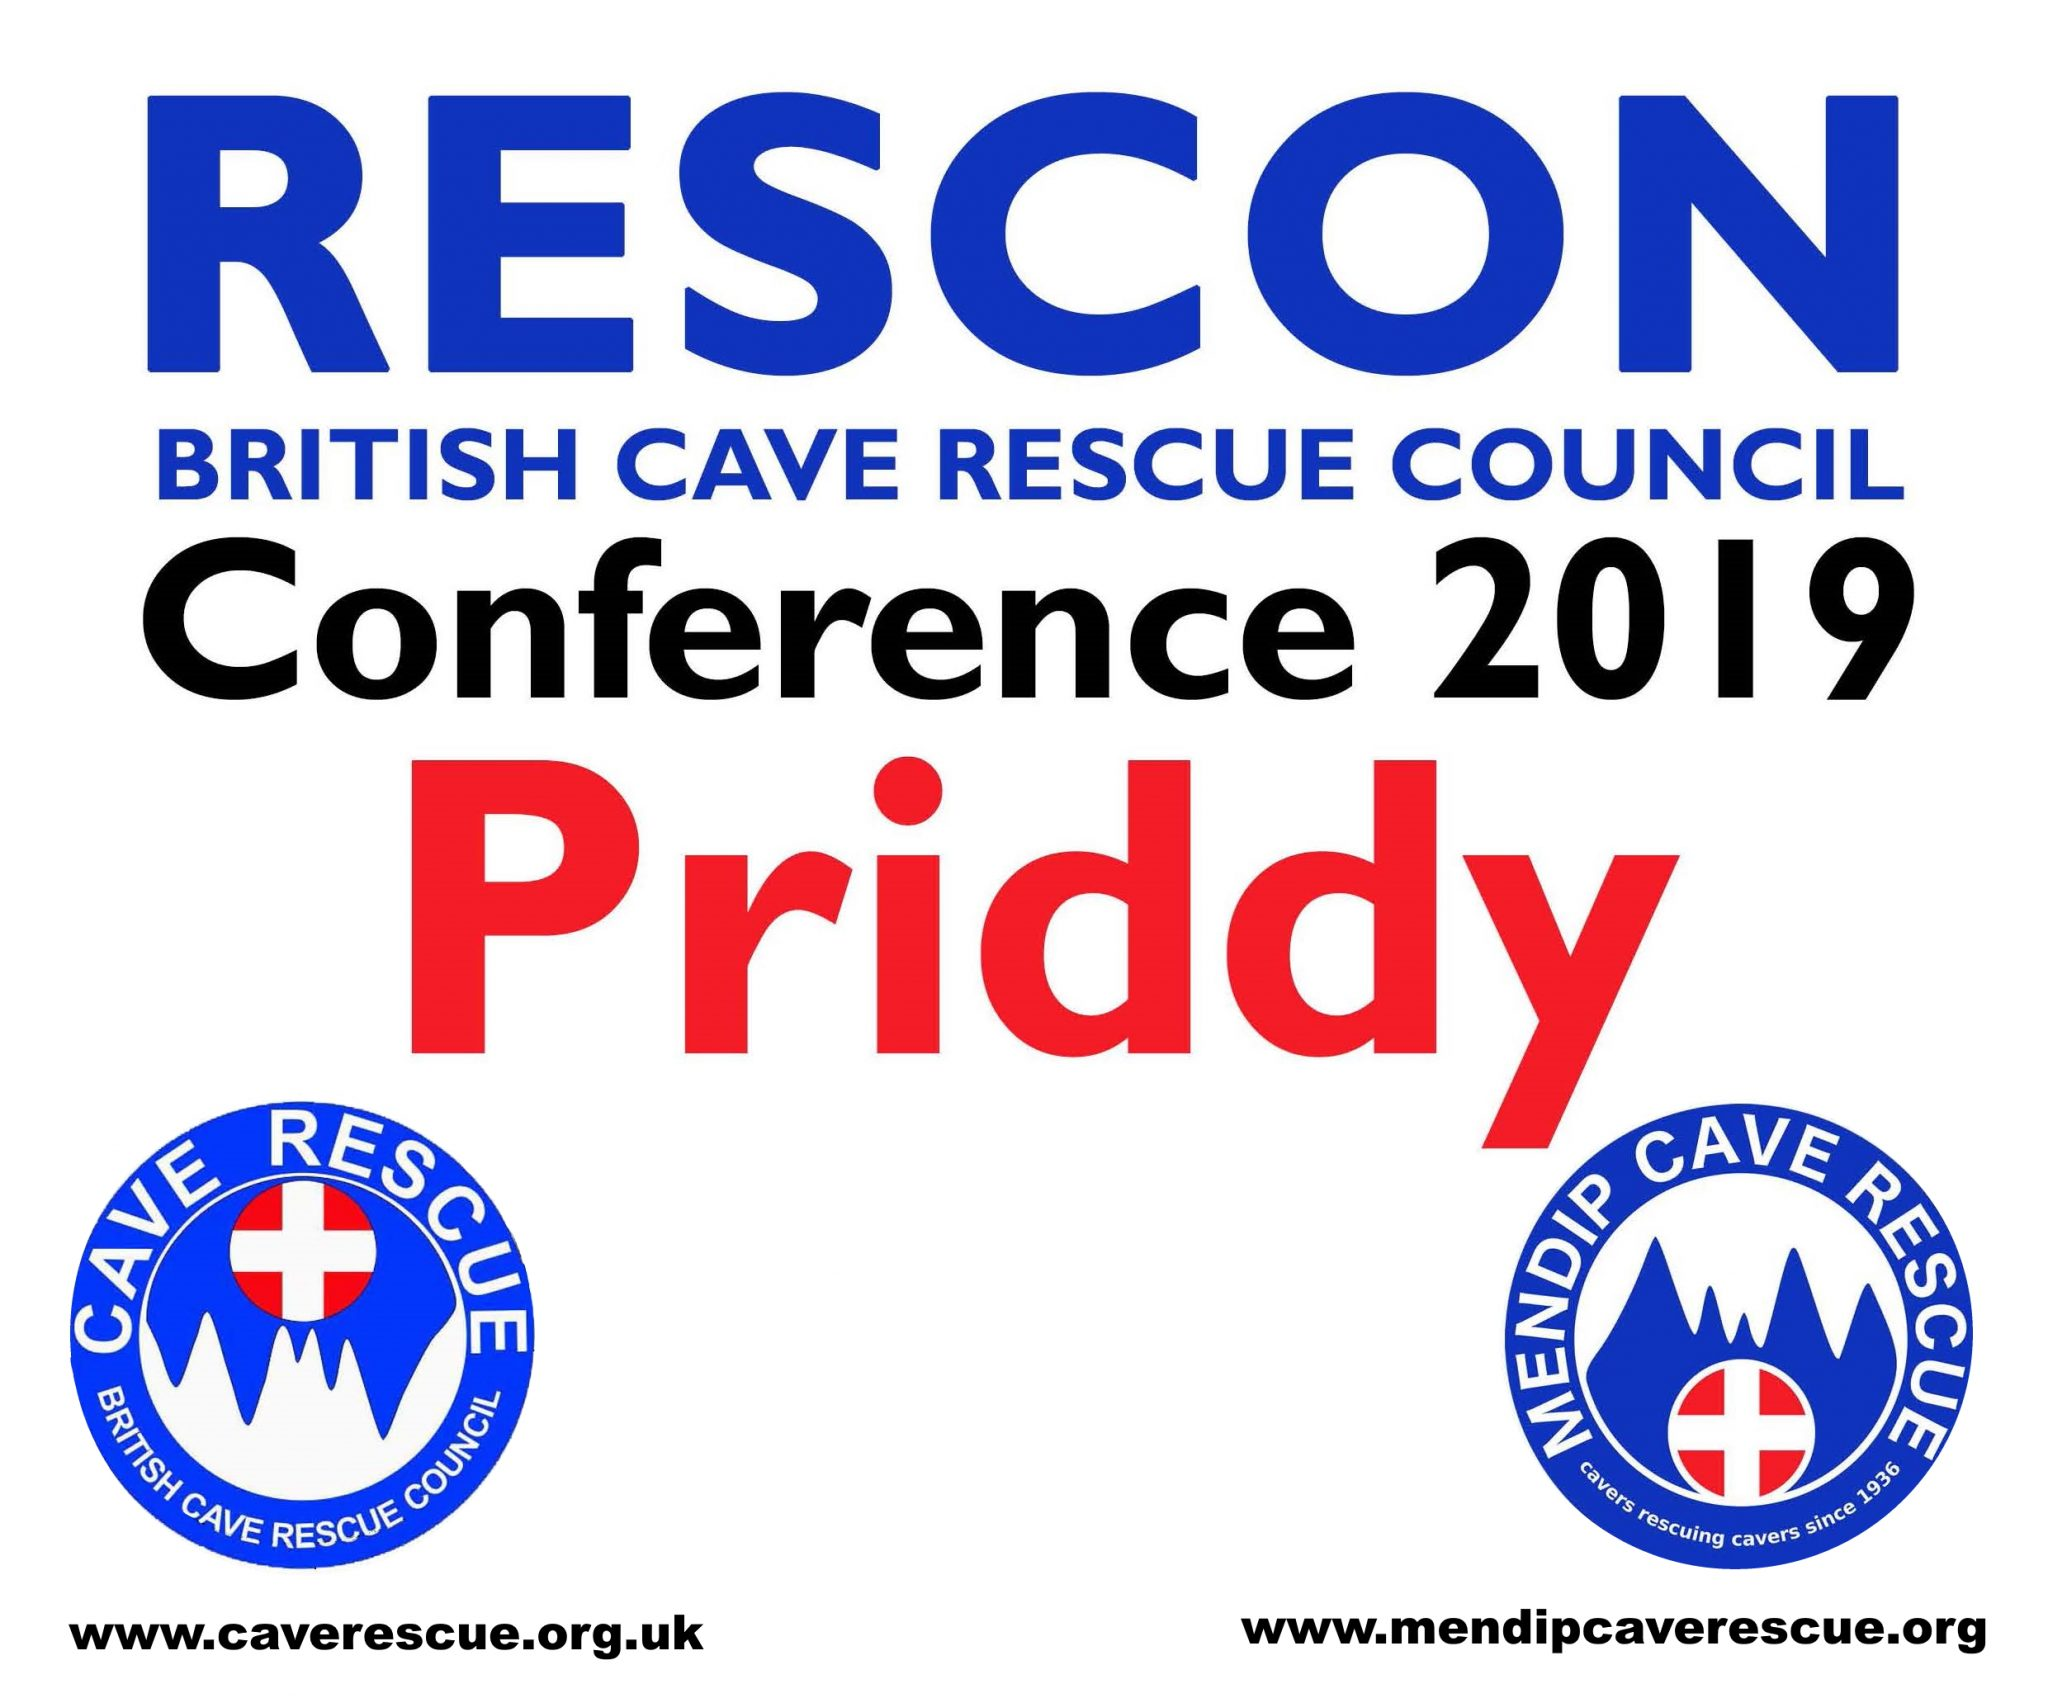 RESCON British Cave Rescue Conference 2019